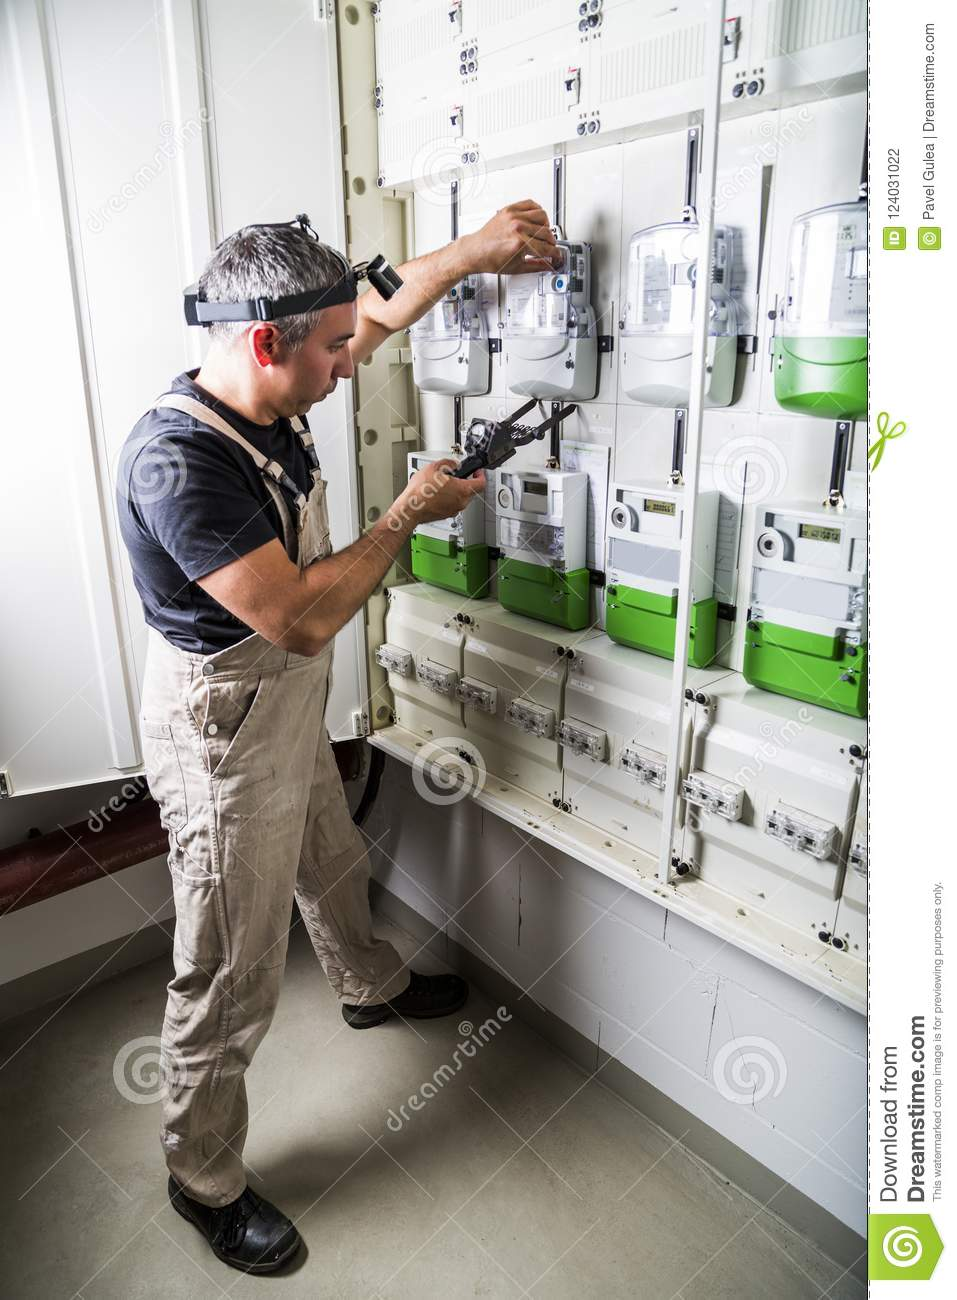 medium resolution of electrician standing near fuse box or switch box and testing equipment with old retro voltmeter